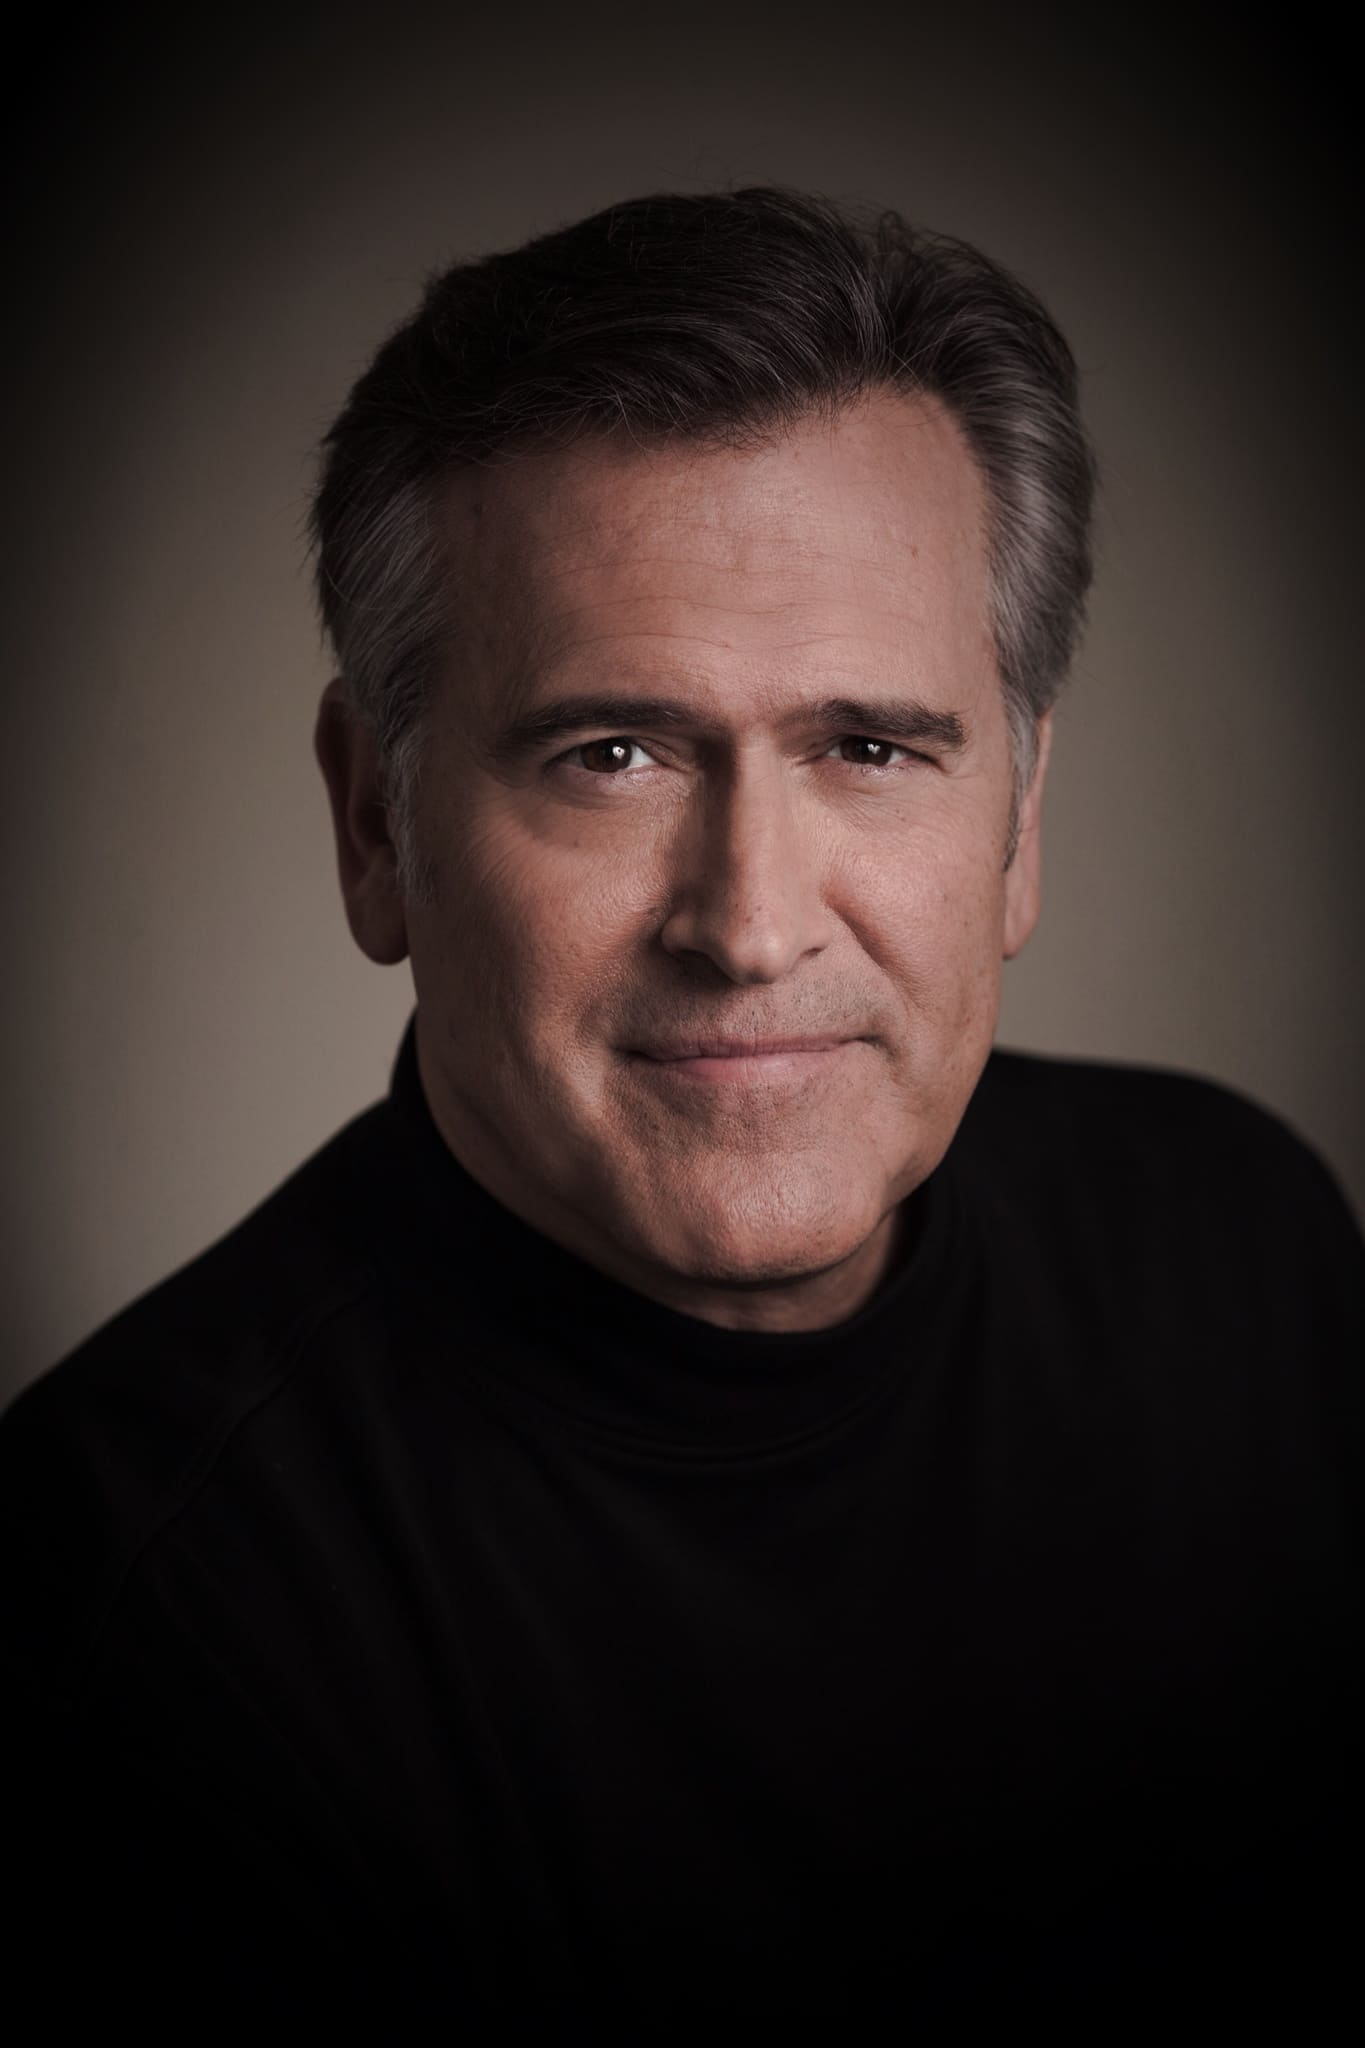 Bruce Campbell American Television Actor, Film Director, Film Producer, Screenwriter, Video Game Artist, Voice Artist